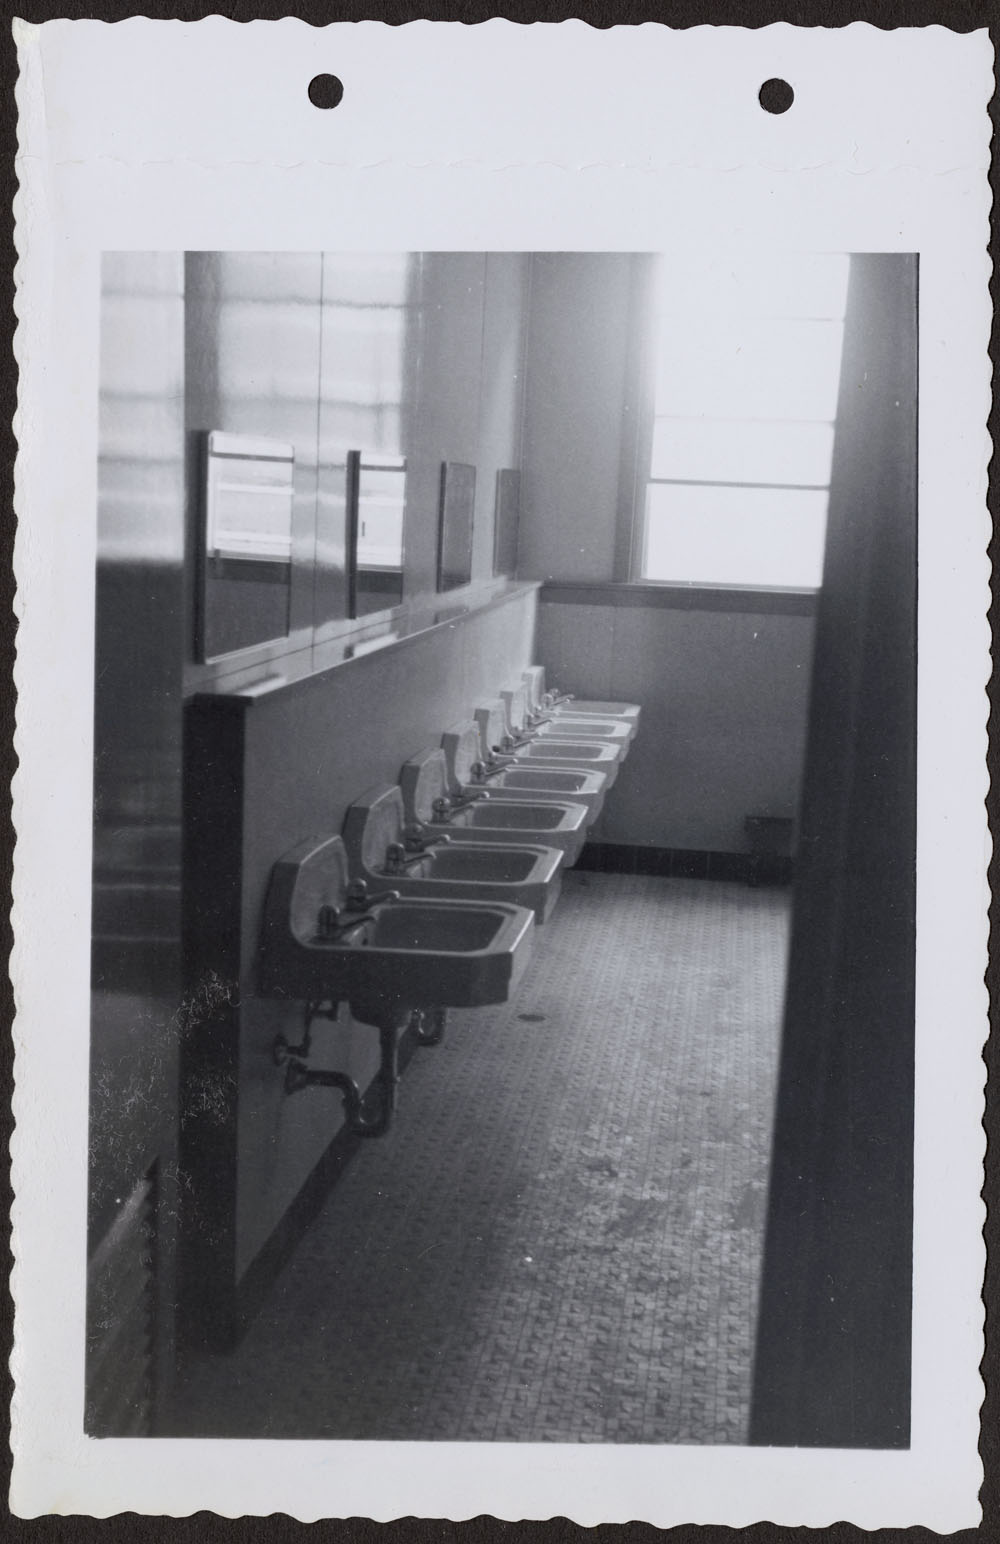 École Bishop Horden (Pensionnat indien de Moose Factory), toilettes du dortoir, Moose Factory Island, 24 mai 1956